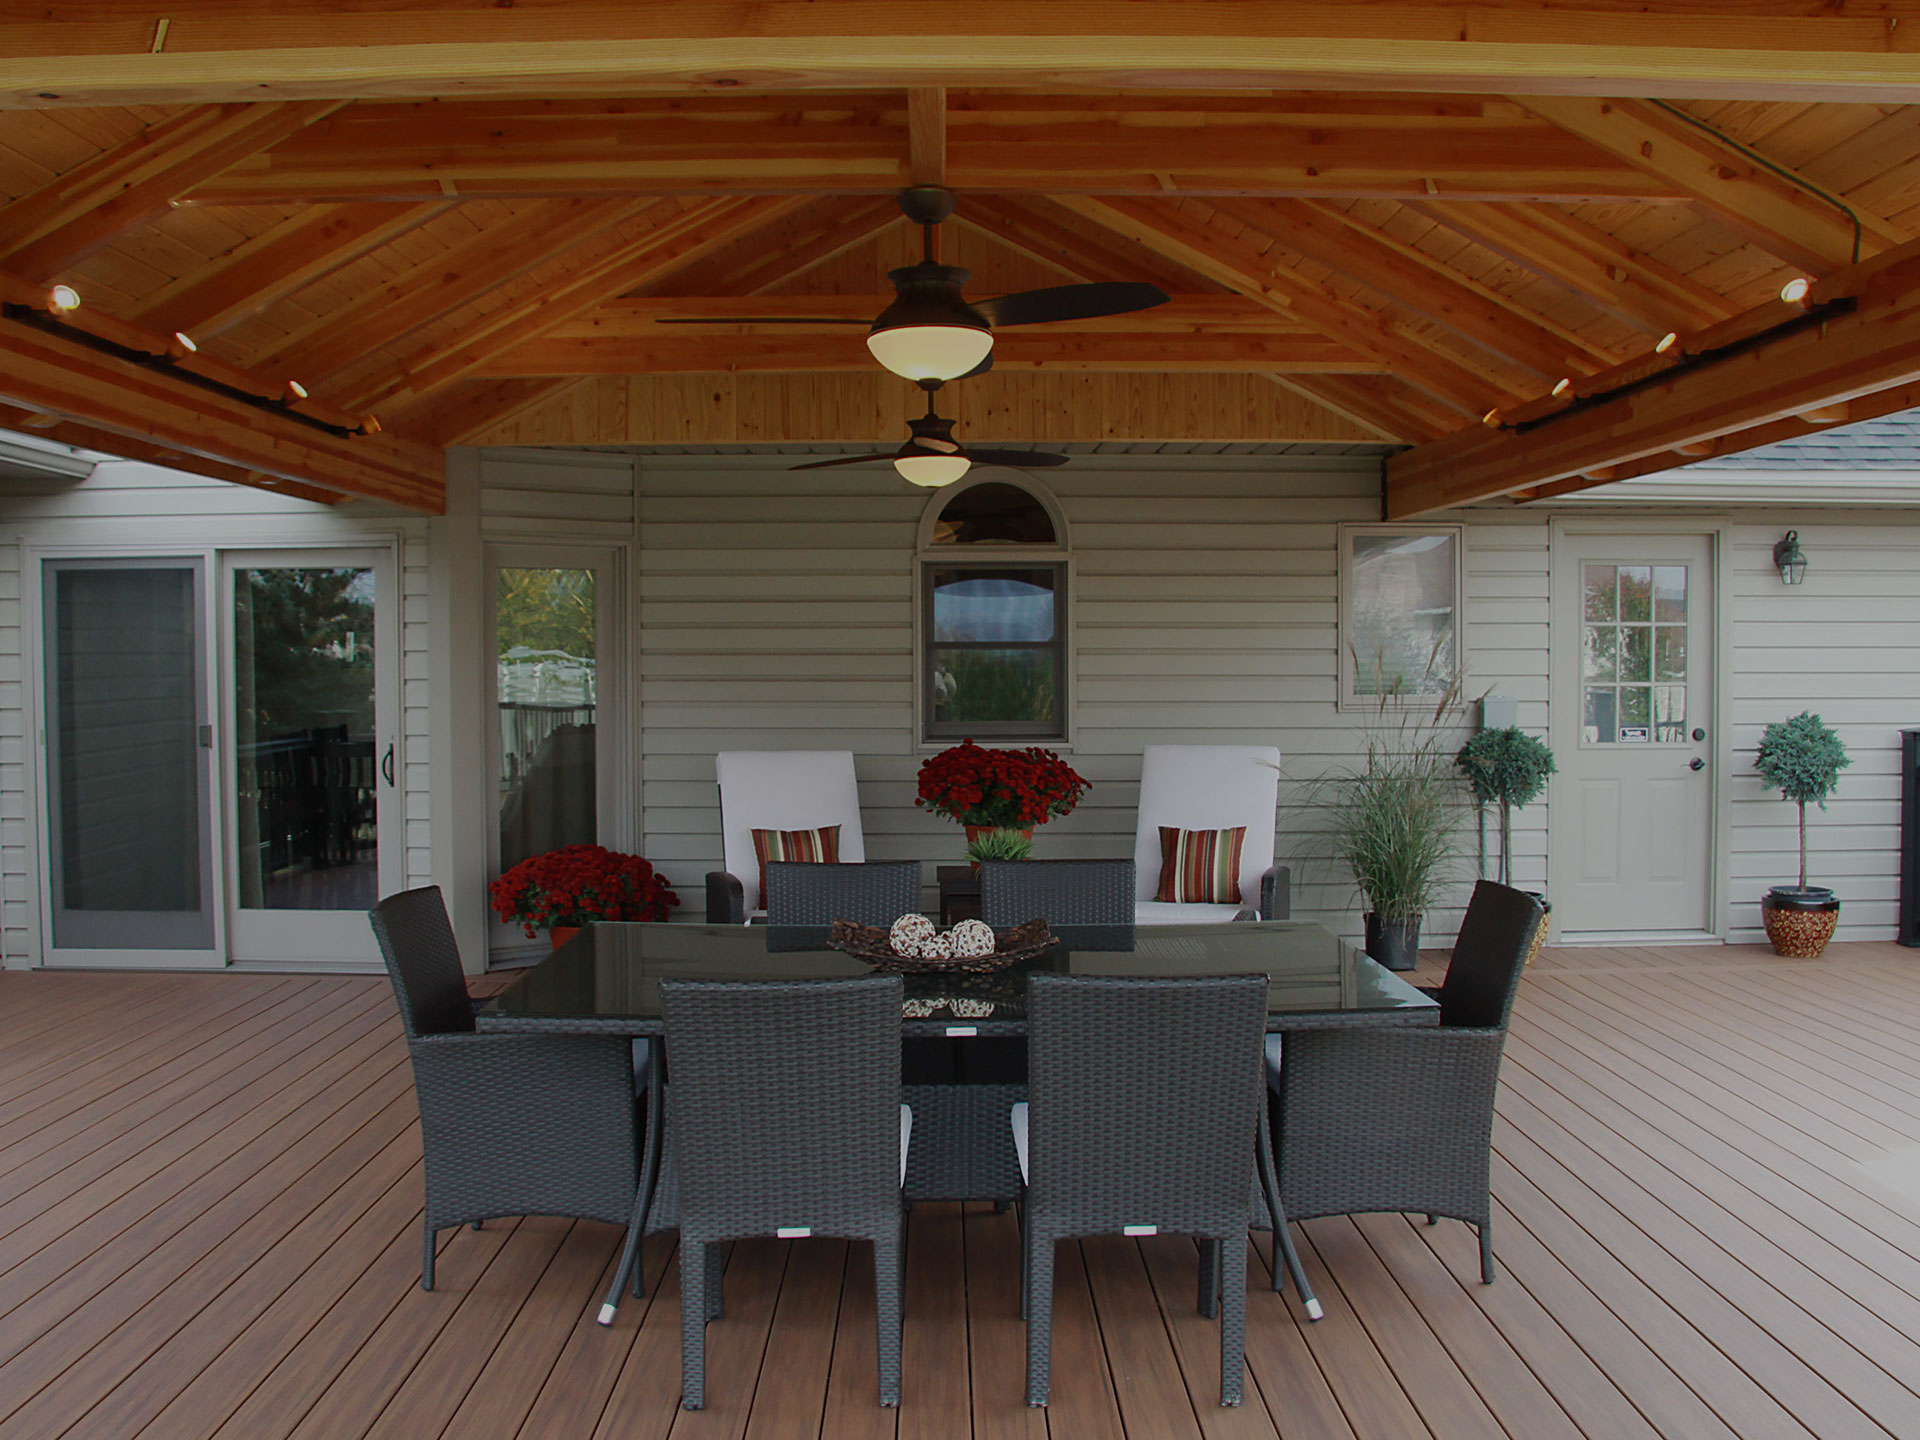 Outdoor dining area on covered patio